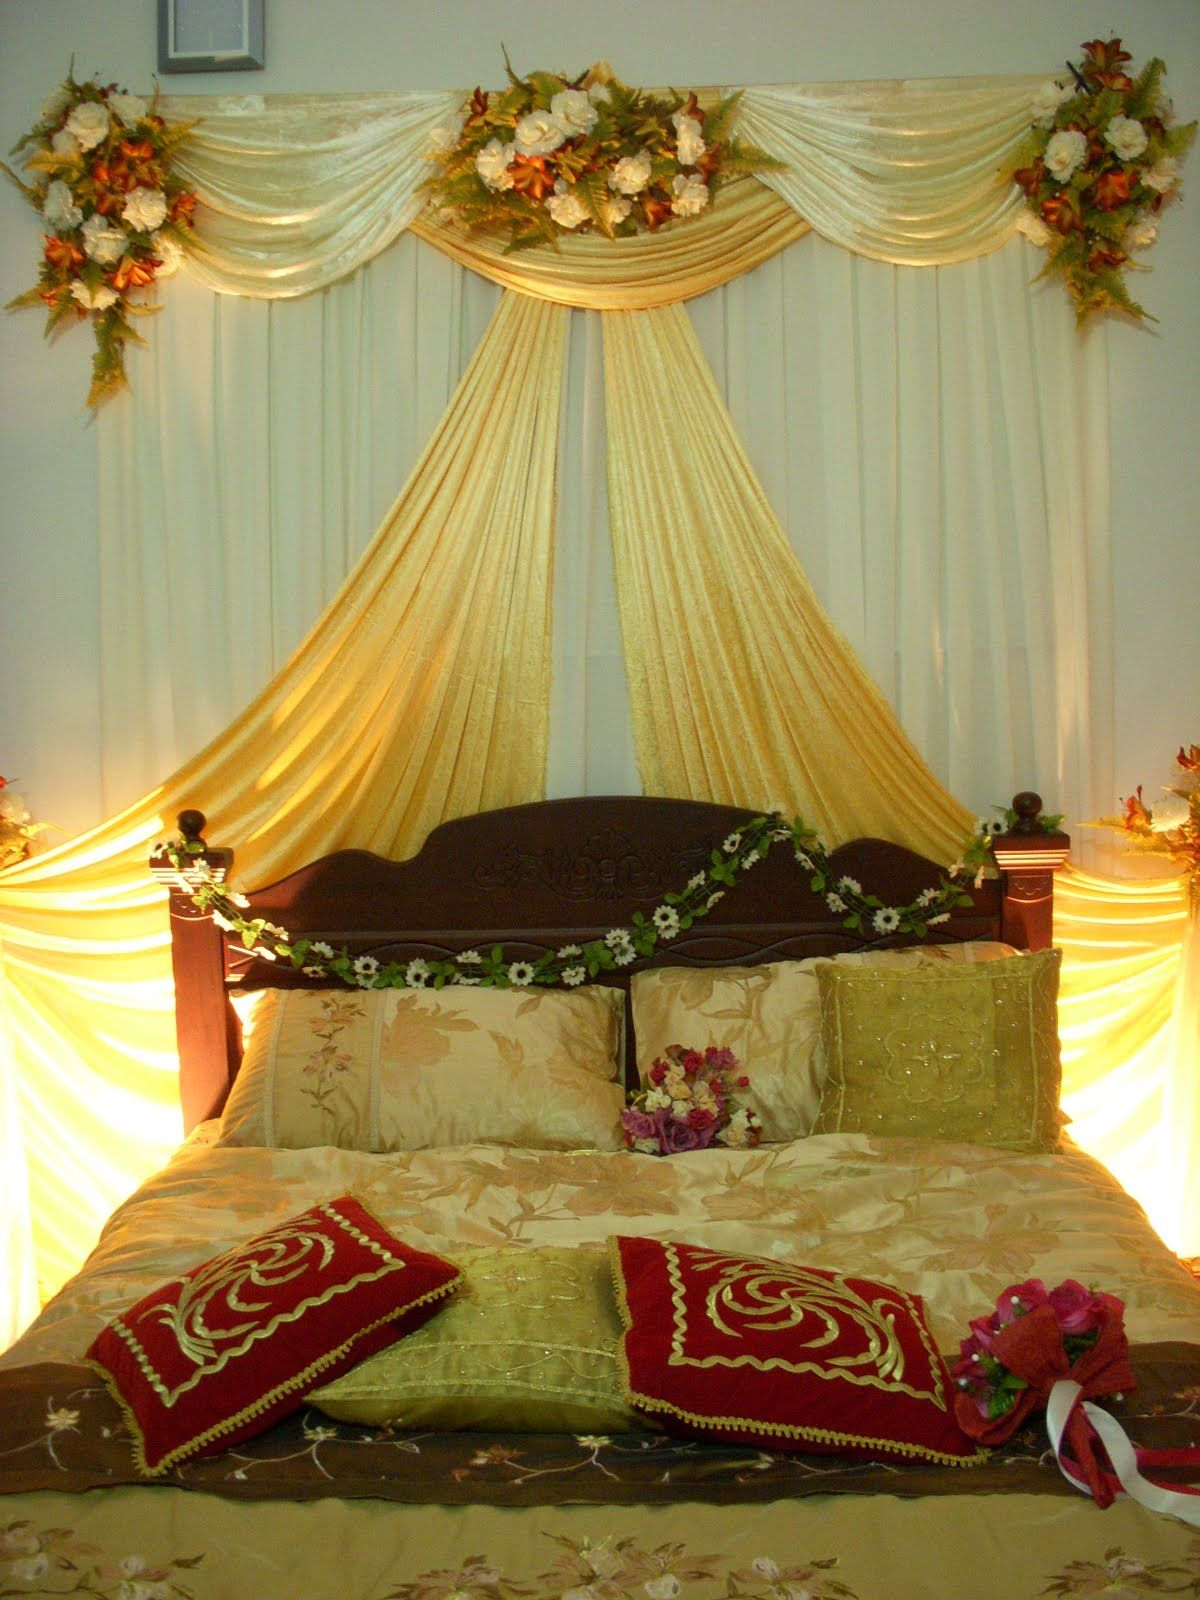 Bedroom decorating ideas for wedding night - Romantic Bedroom Decoration Ideas For Wedding Night Is One Of The Most Attractive Function In Wedding Night Romantic Bedroom Decorating Id